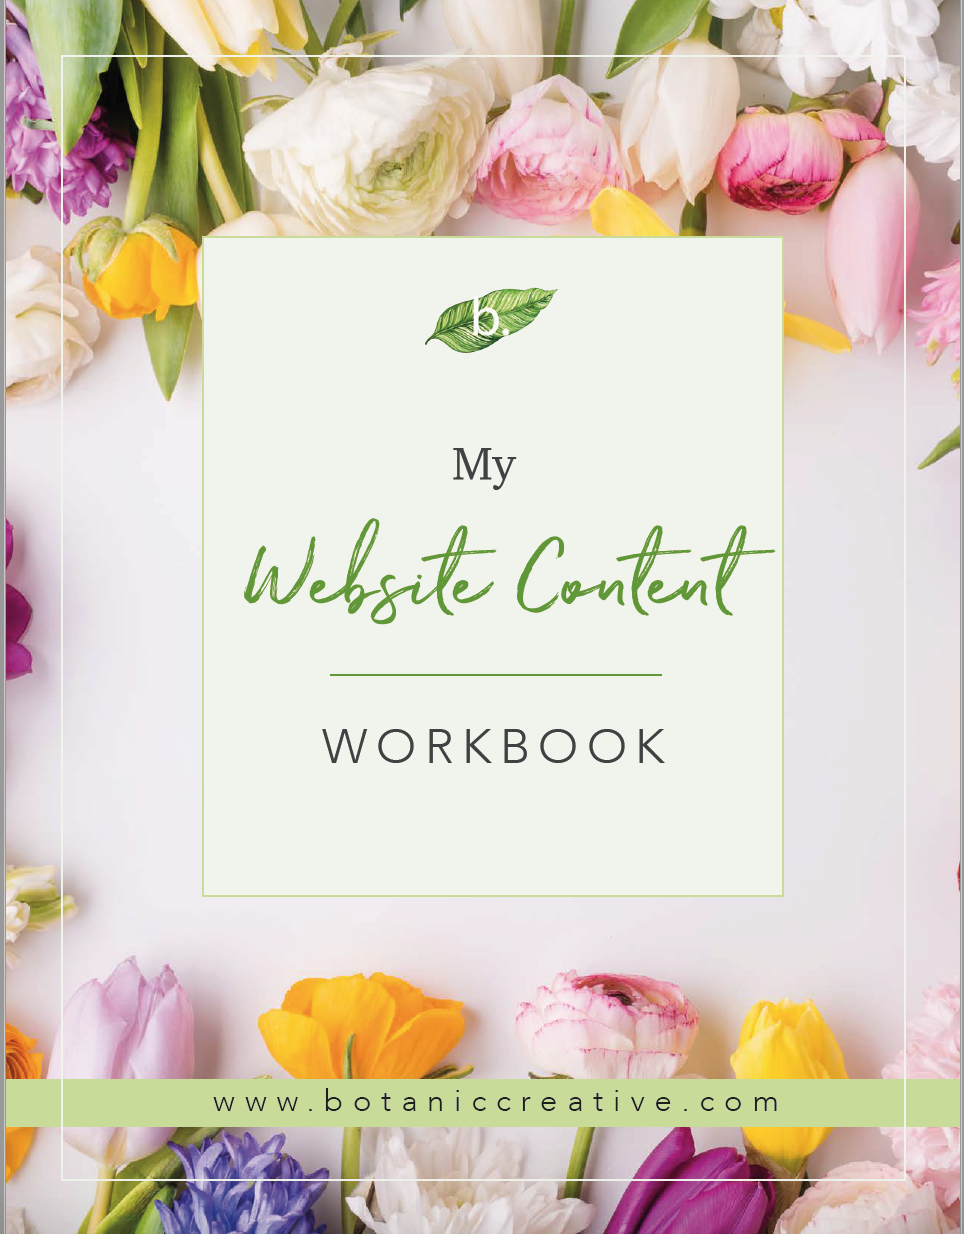 You'll need to send me your written content for your website & your images. - Don't worry, I'll provide this workbook which will help you write your content. Plus, we'll plan out the layout of the homepage too so that you know how much text to write / what to write. My website workbook also includes a template for writing your sales page!